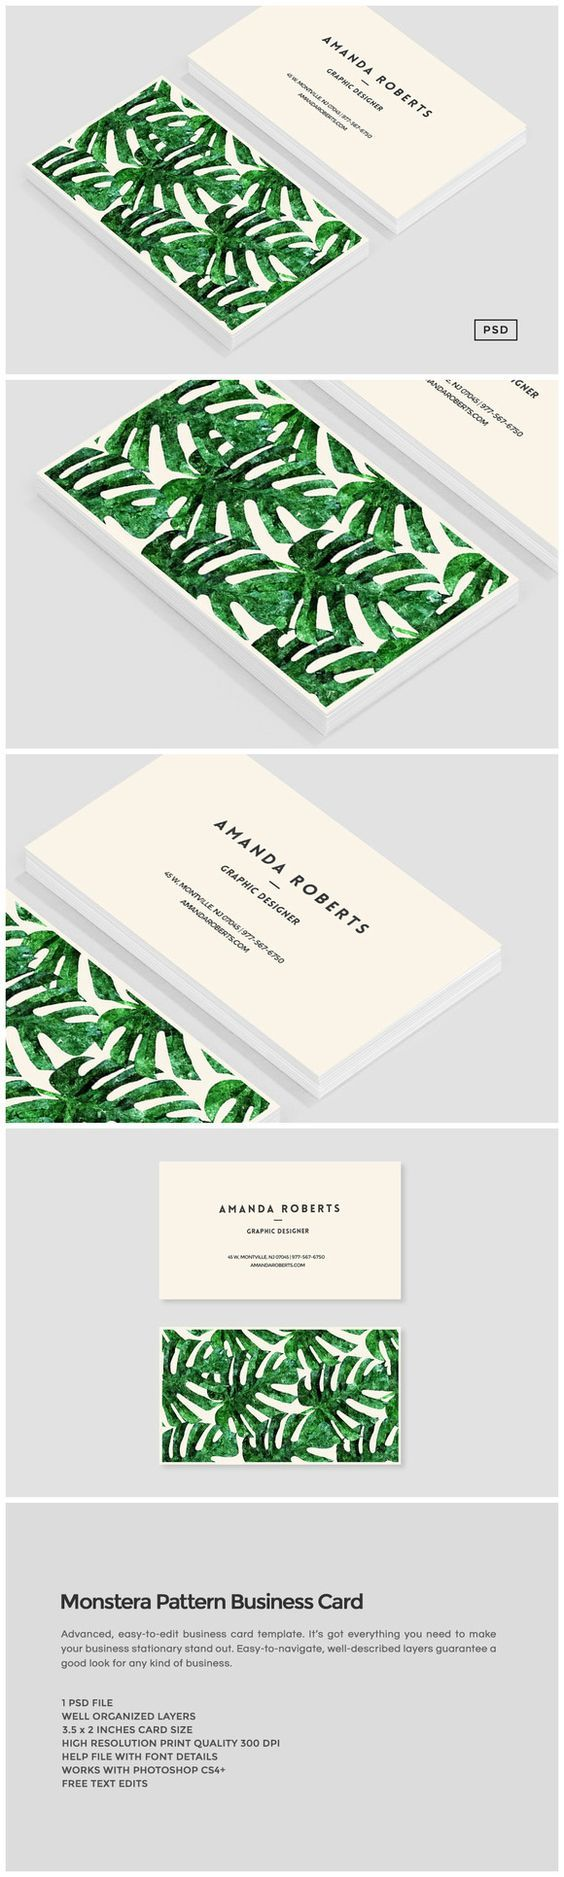 Monstera Pattern Business Card Introducing our latest Monstera Pattern business card template, perfect for use in your next project or for…